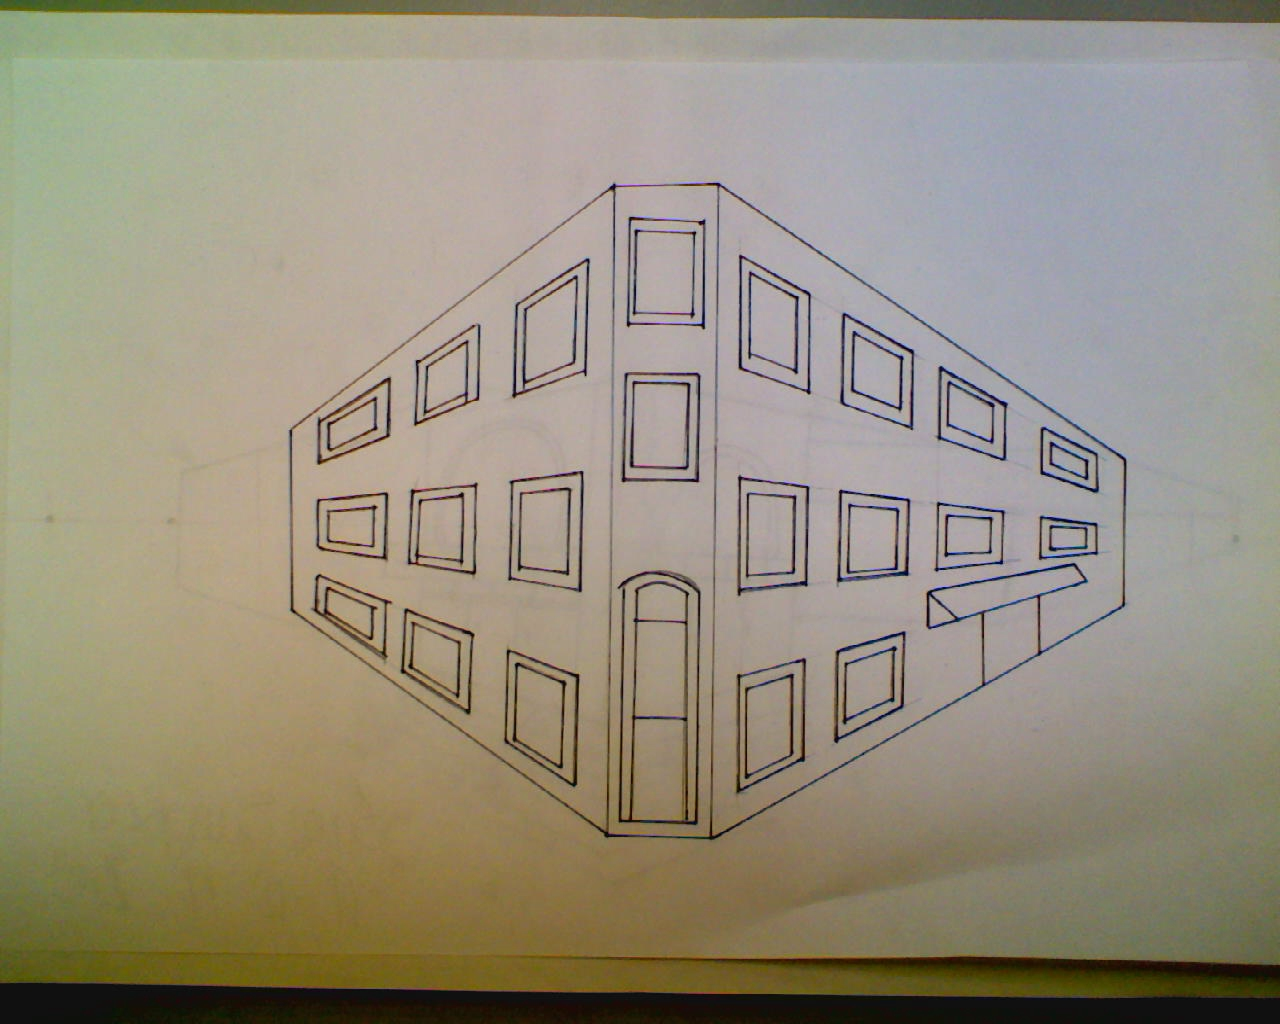 Sam Sangster Two Point Perspective City Building Drawing